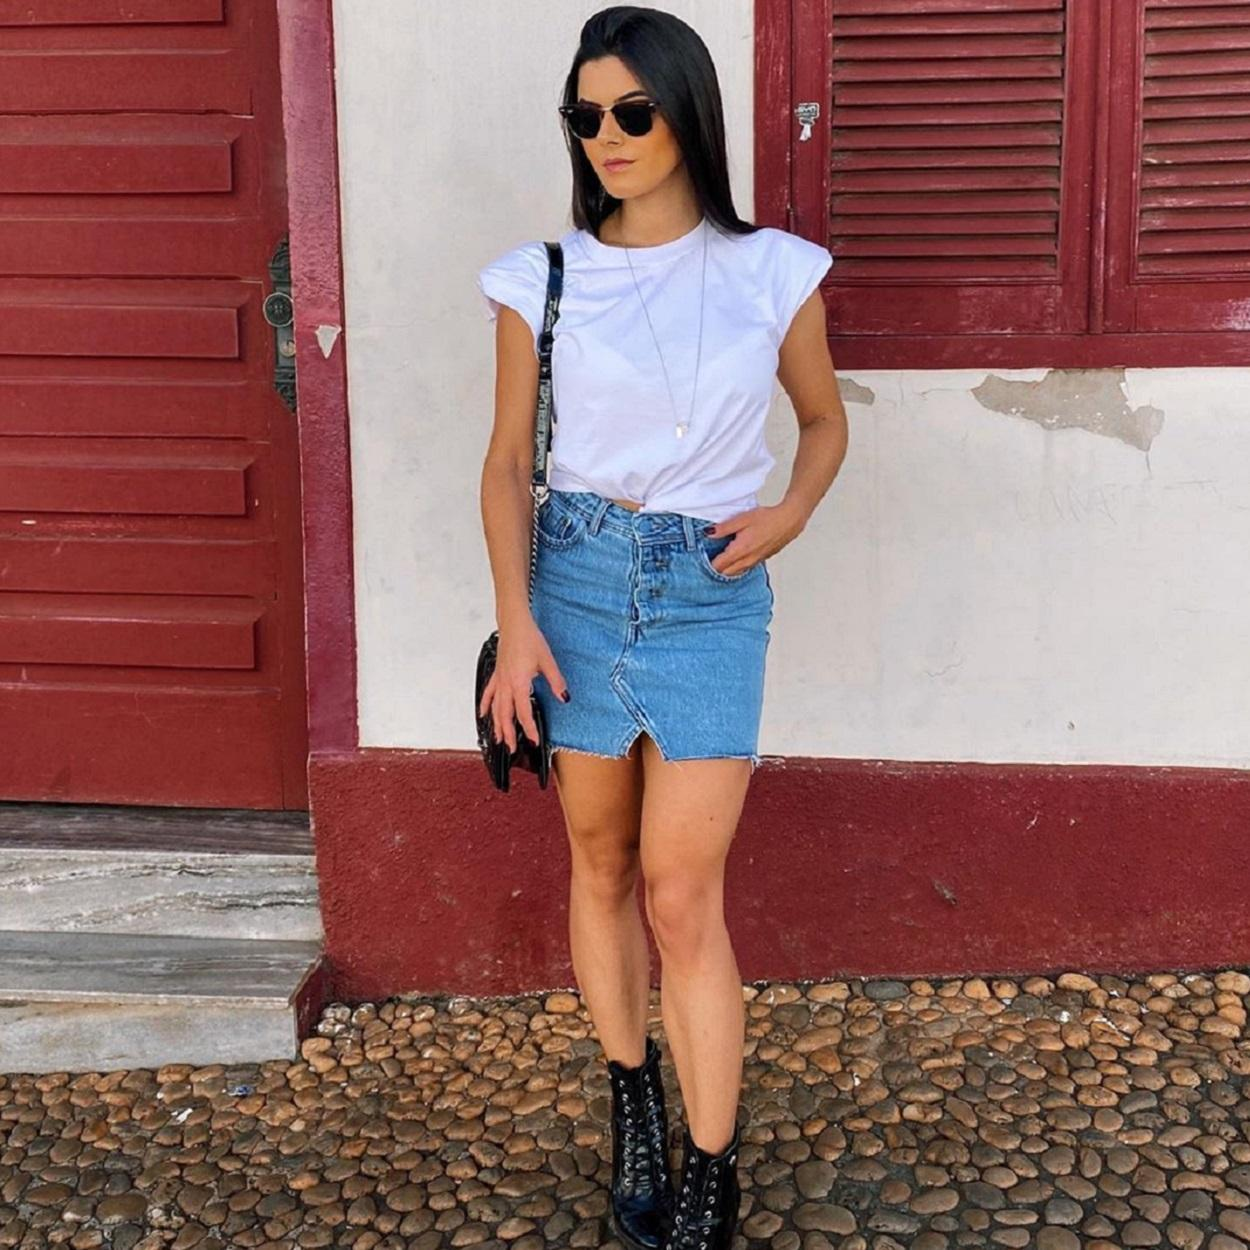 Muscle tee com jeans